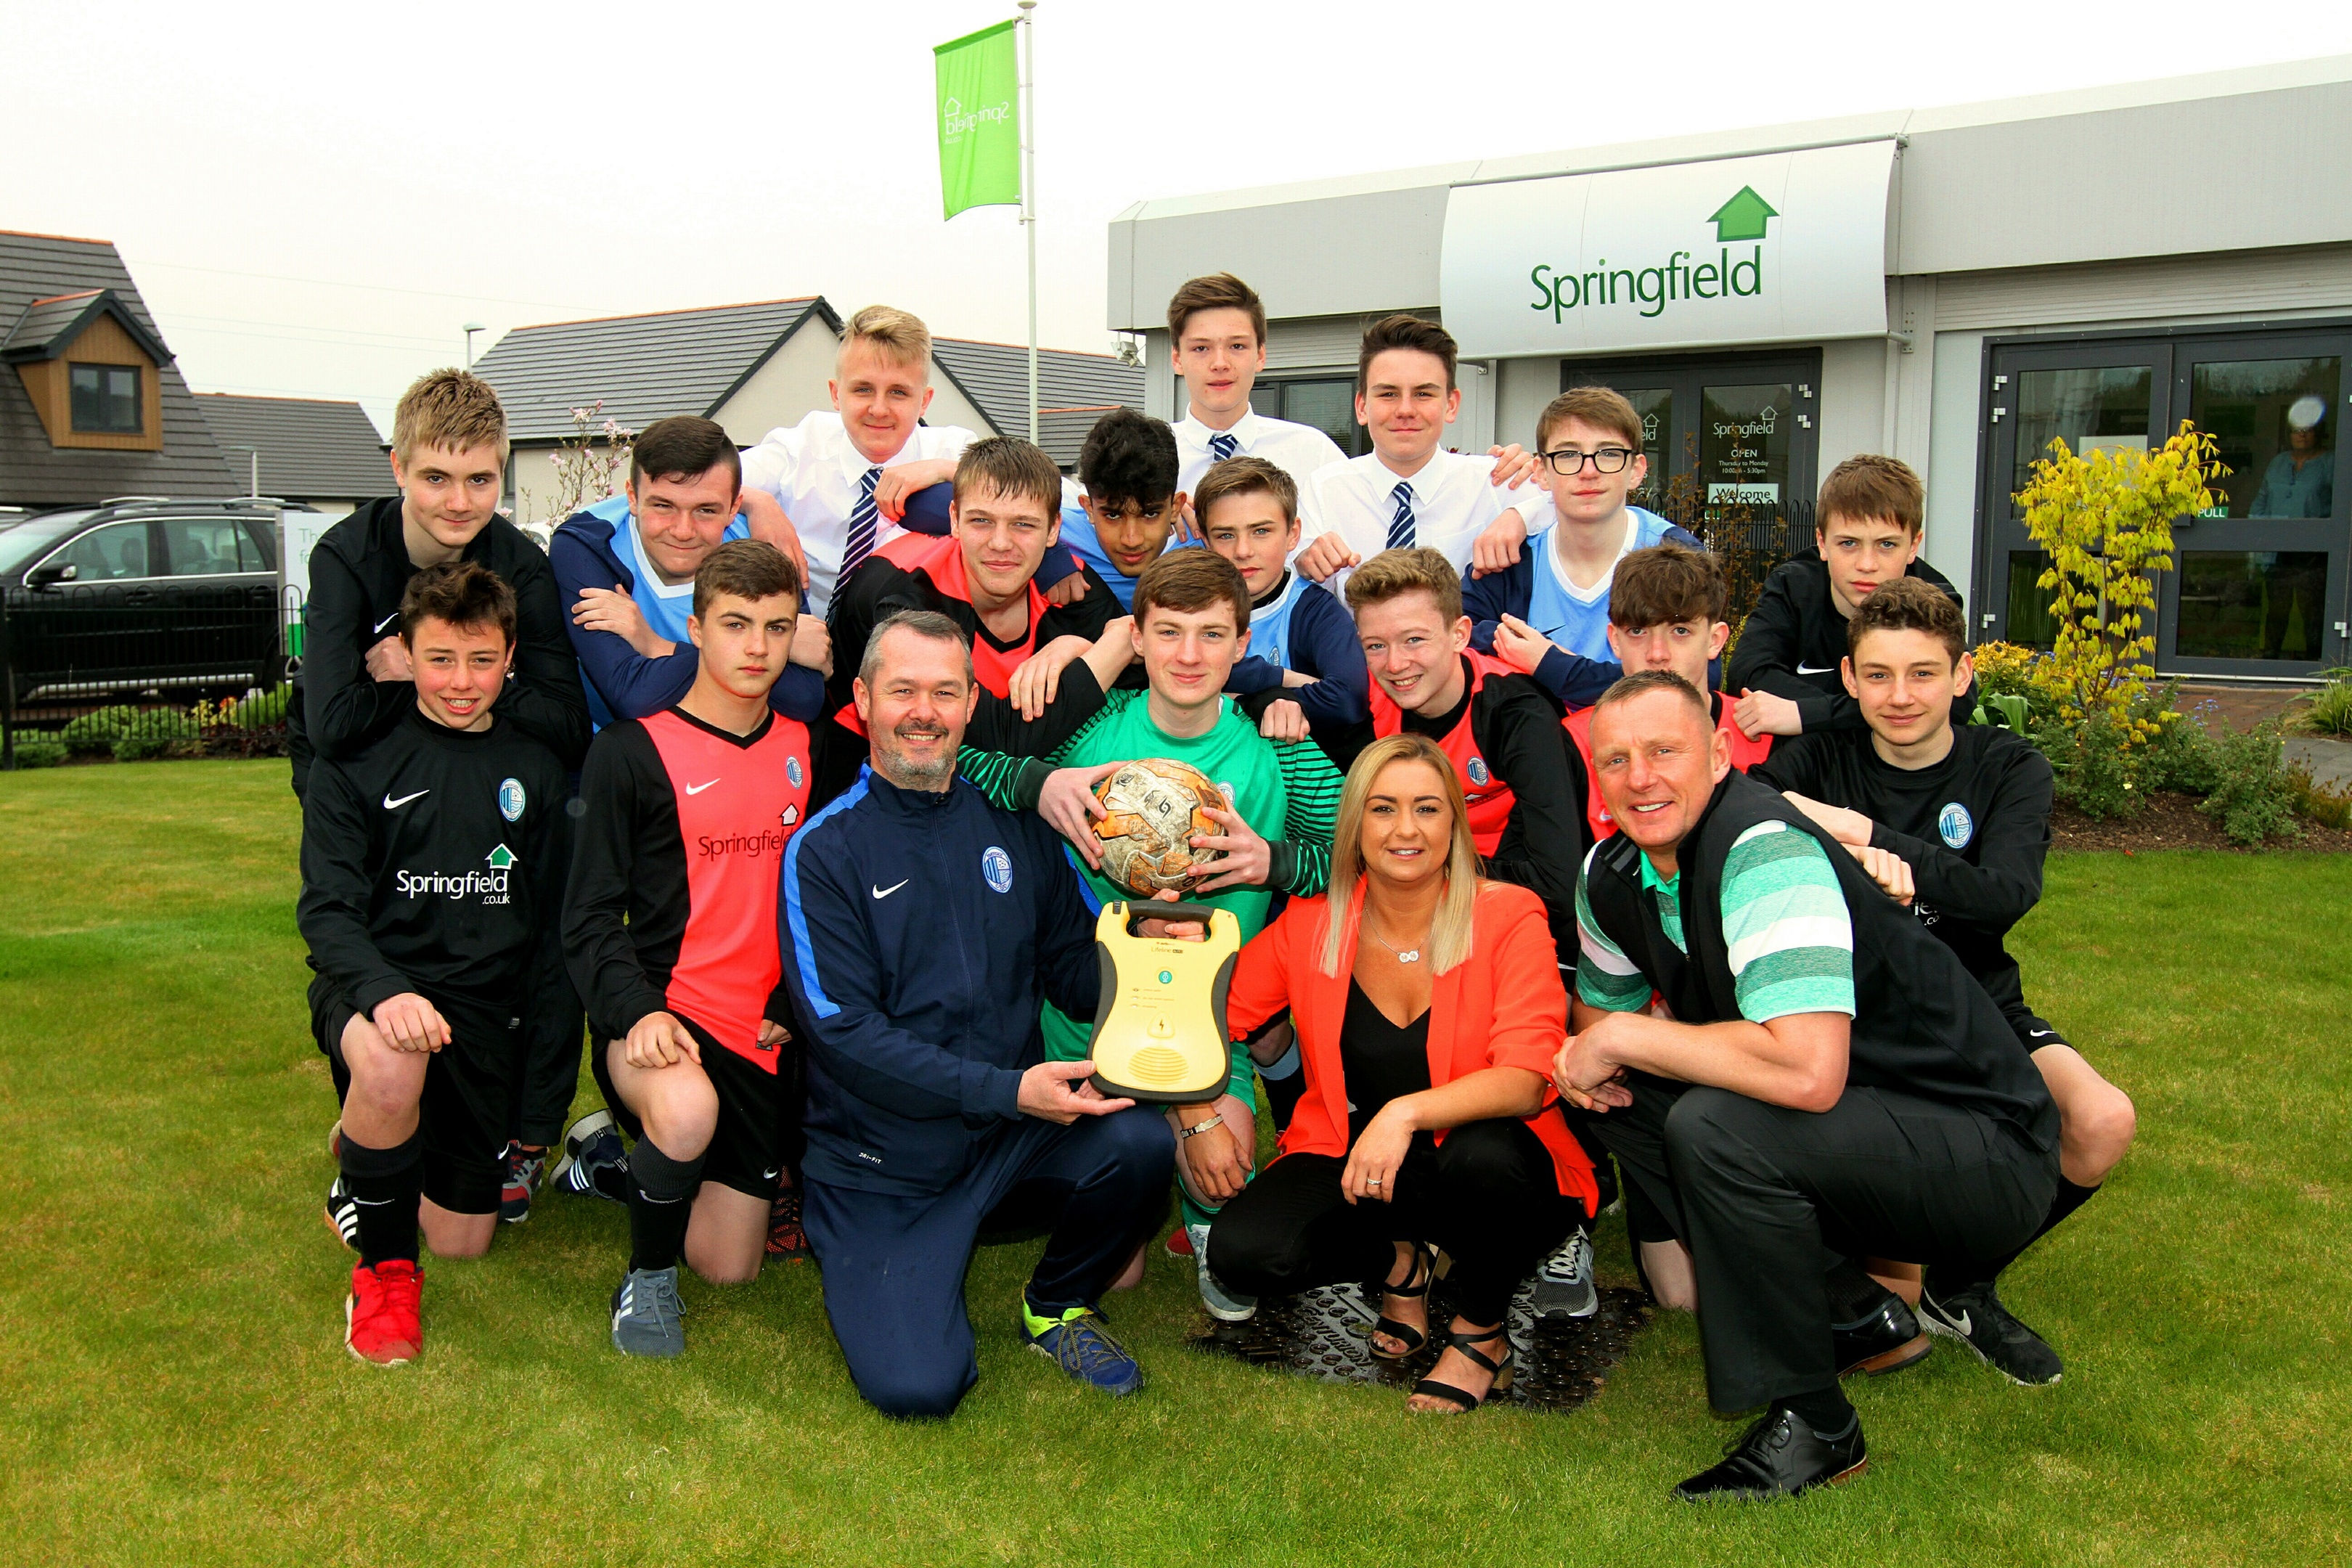 The team want to set an example to clubs across Scotland